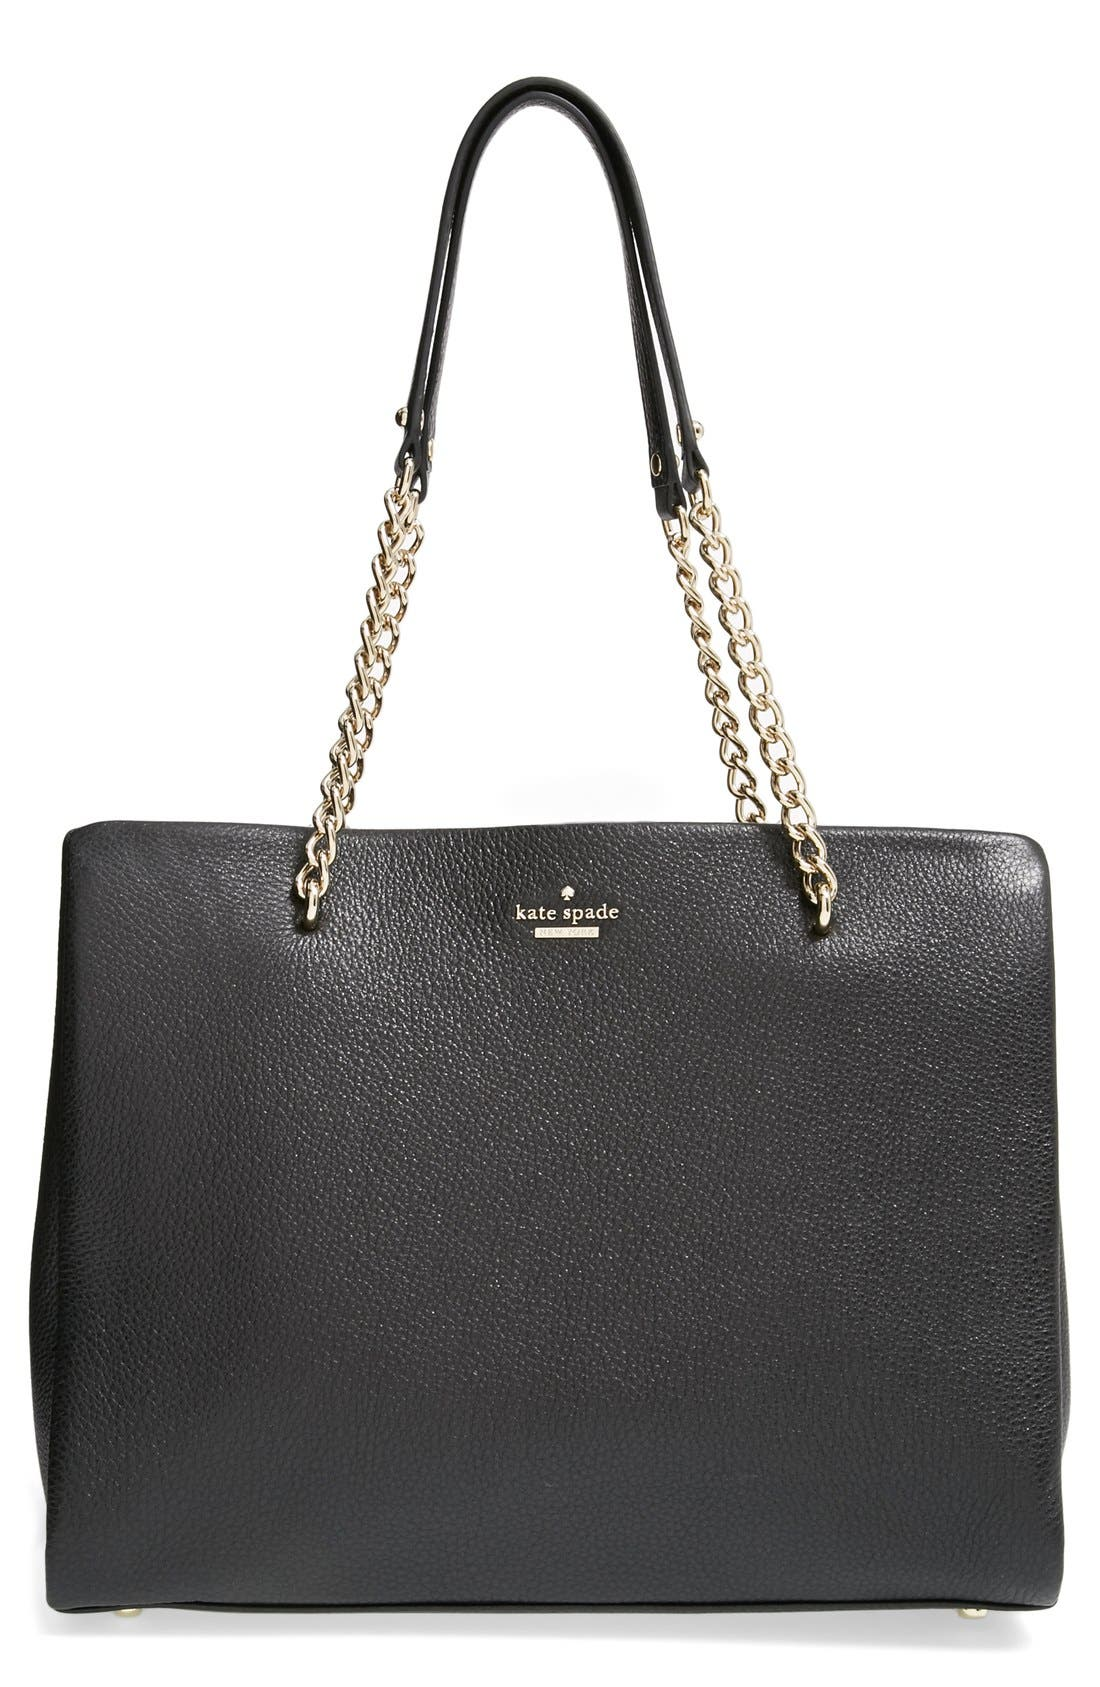 KATE SPADE NEW YORK,                             'emerson place - smooth phoebe' leather shoulder bag,                             Main thumbnail 1, color,                             001